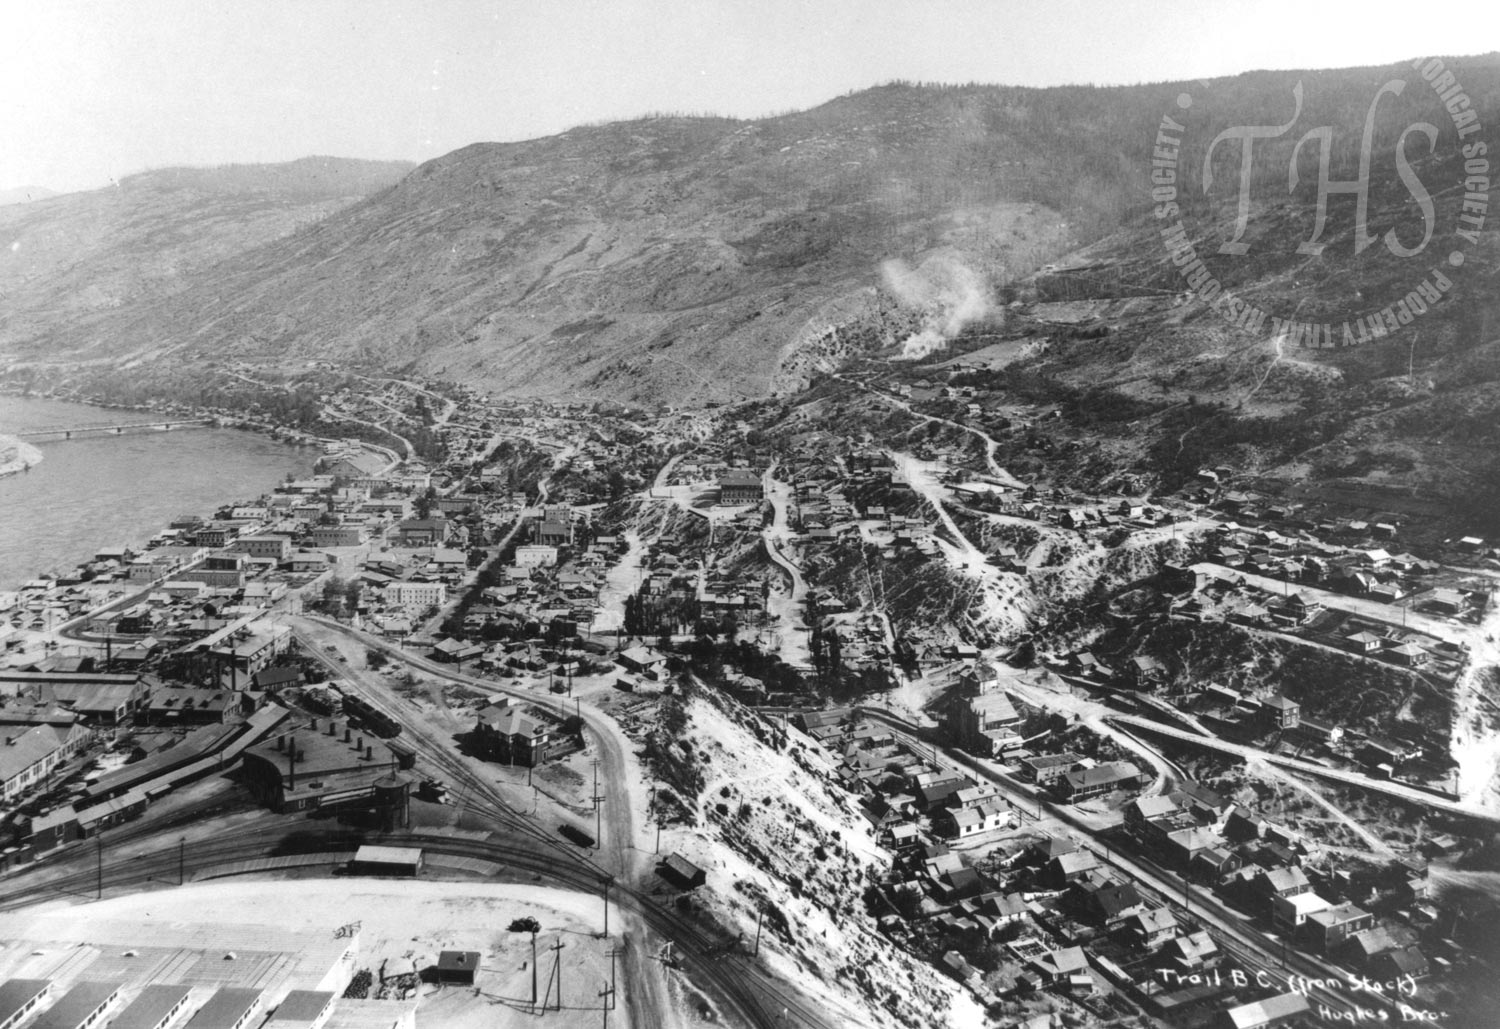 Trail & Gulch from zinc stack (Hughes) - 1925